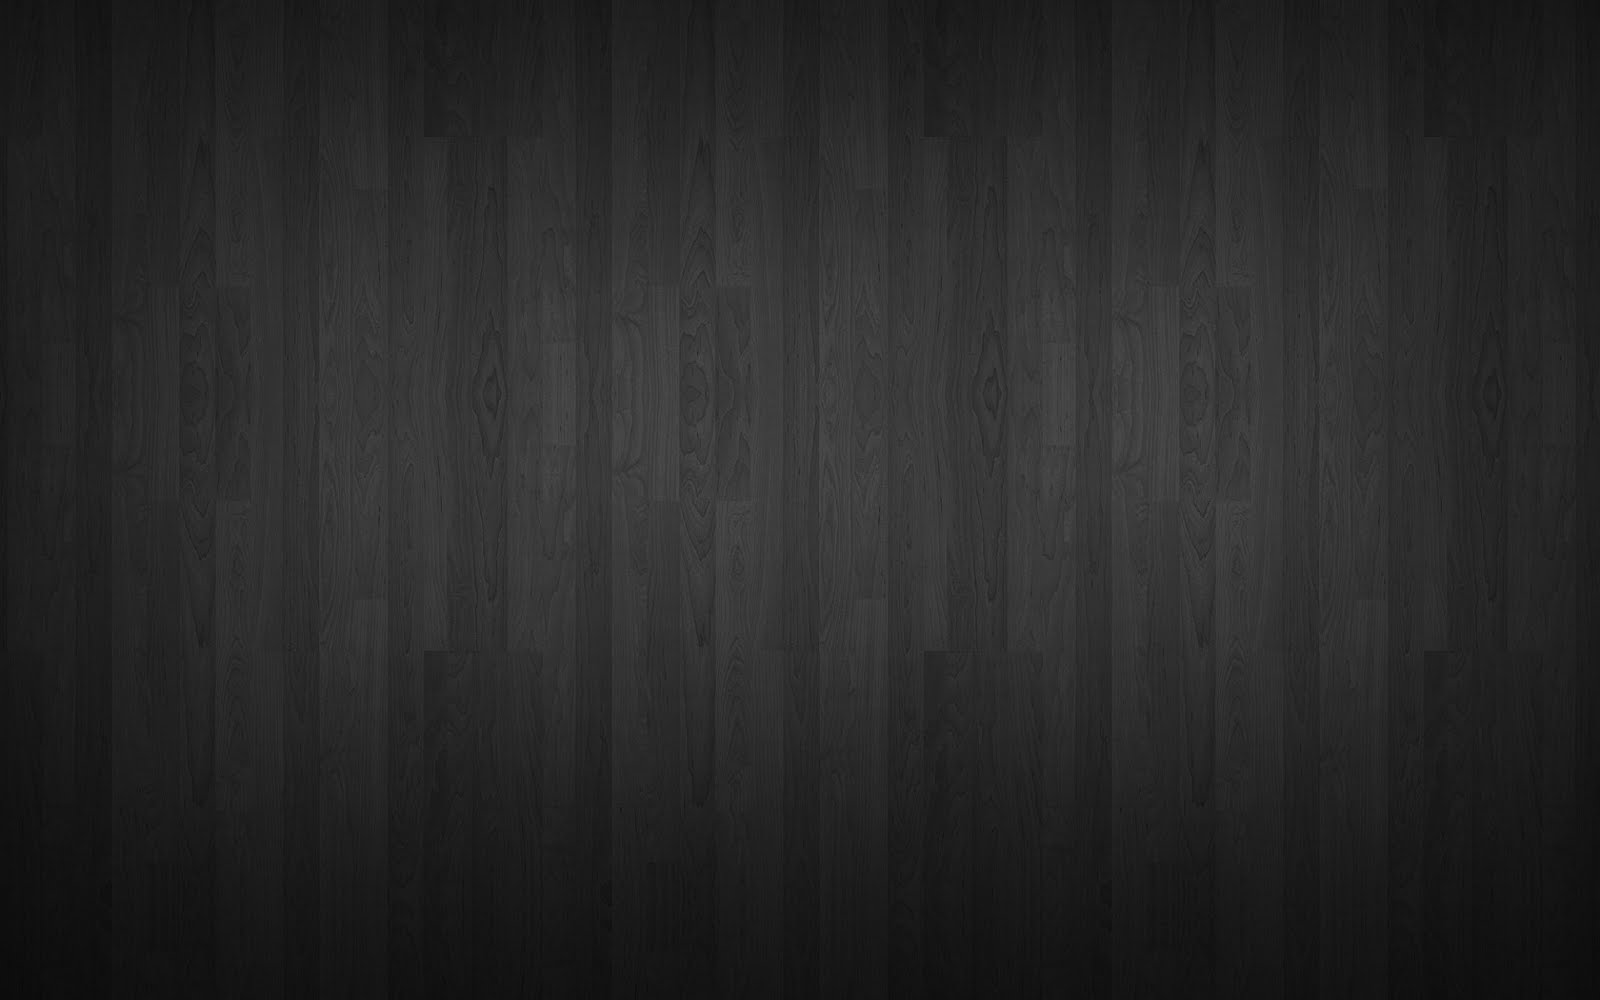 Black Wooden Background Minimalist Wallpaper Hd Wallpaper 1600x1000